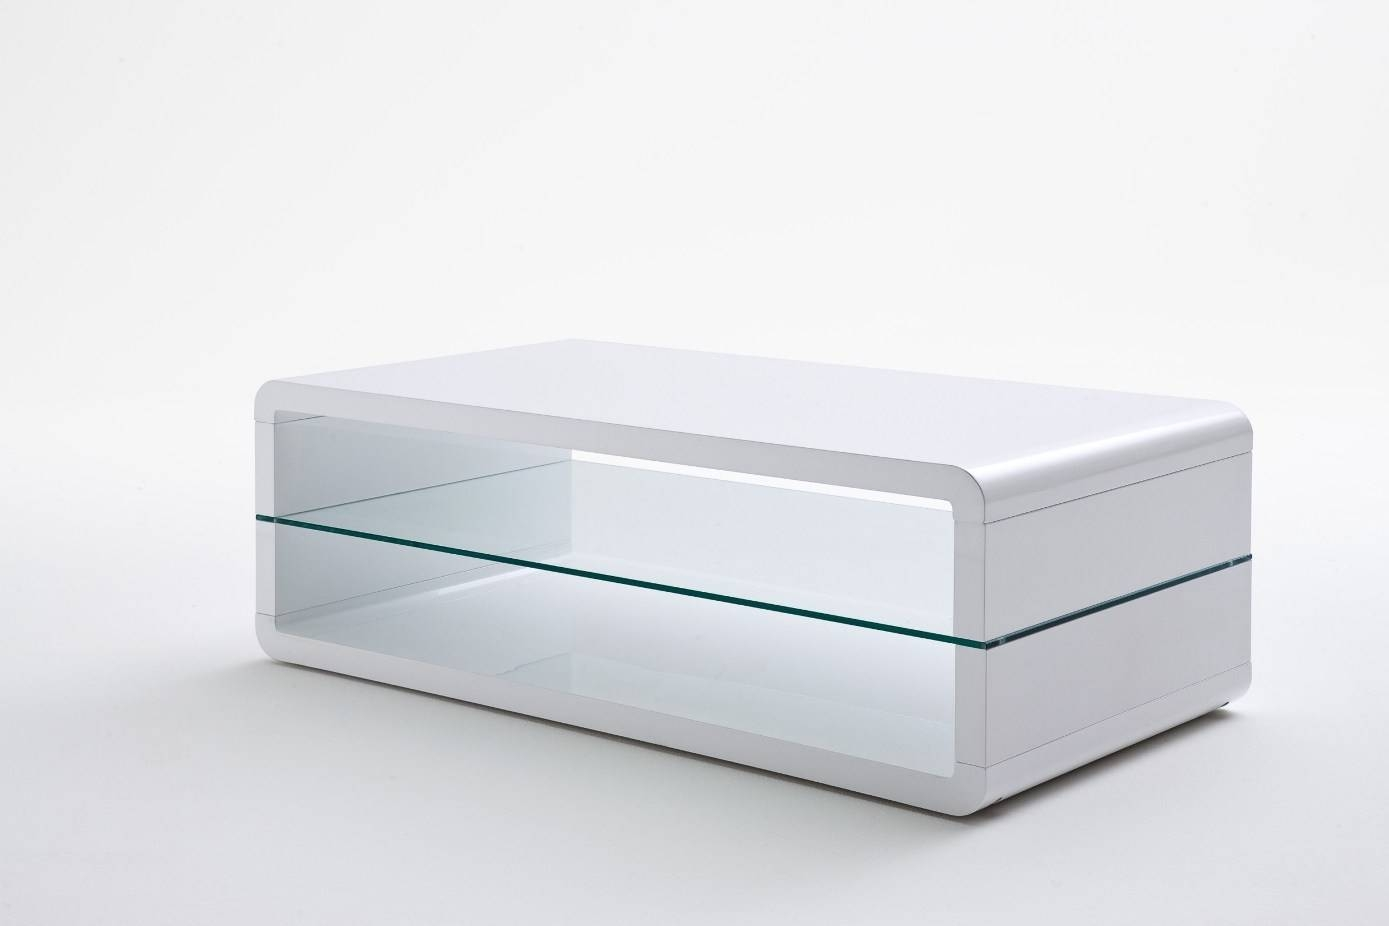 Gloss White Coffee Table Intended For Your House | Onsaleproduct throughout Coffee Tables White High Gloss (Image 9 of 30)